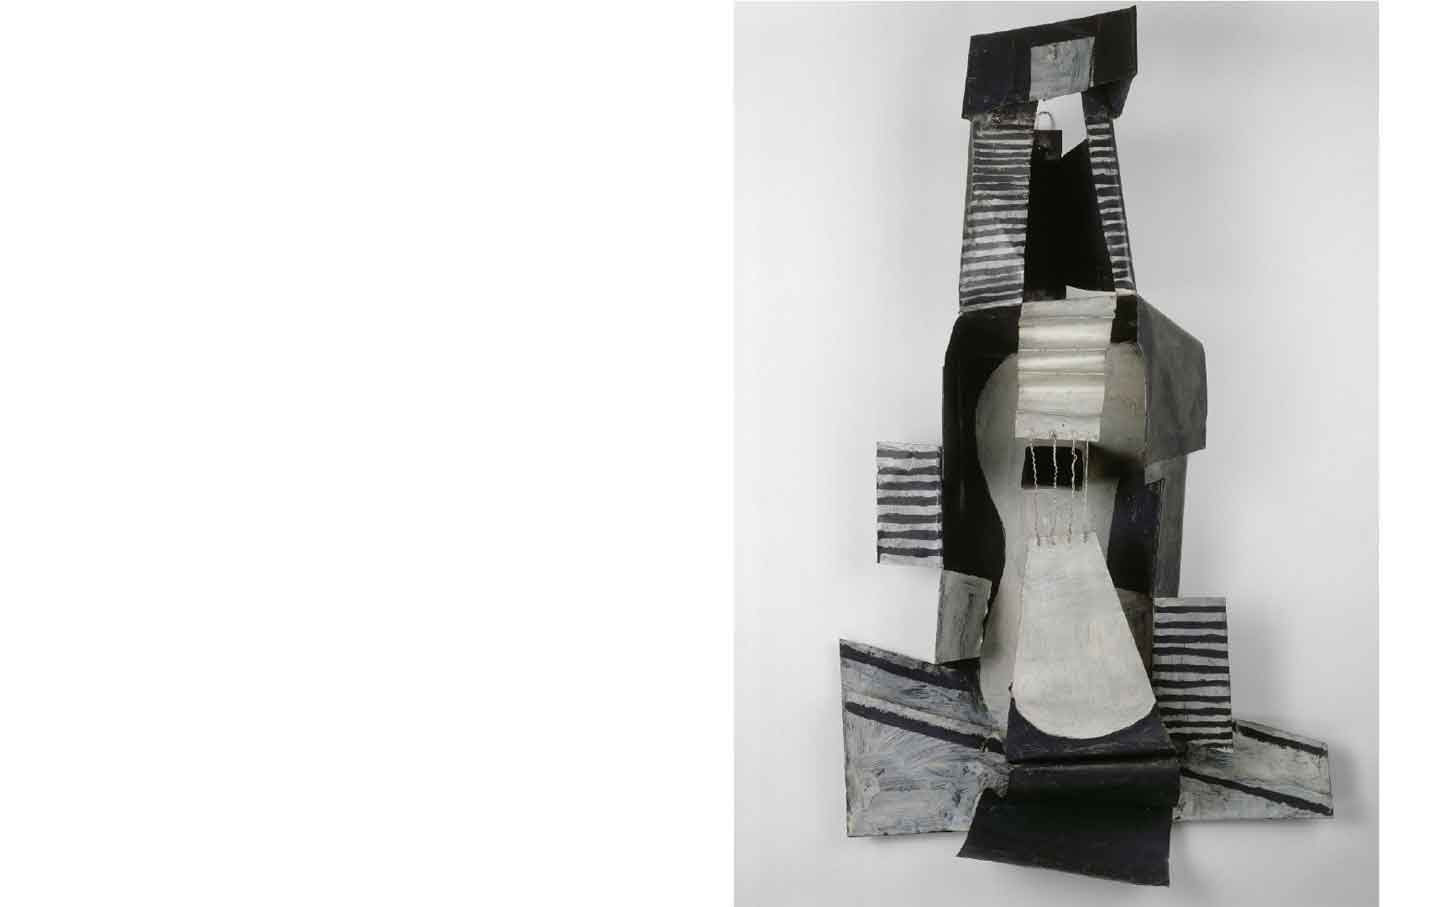 Pablo Picasso, Guitar (1924), © Estate of Pablo Picasso / Artists Rights Society, New York